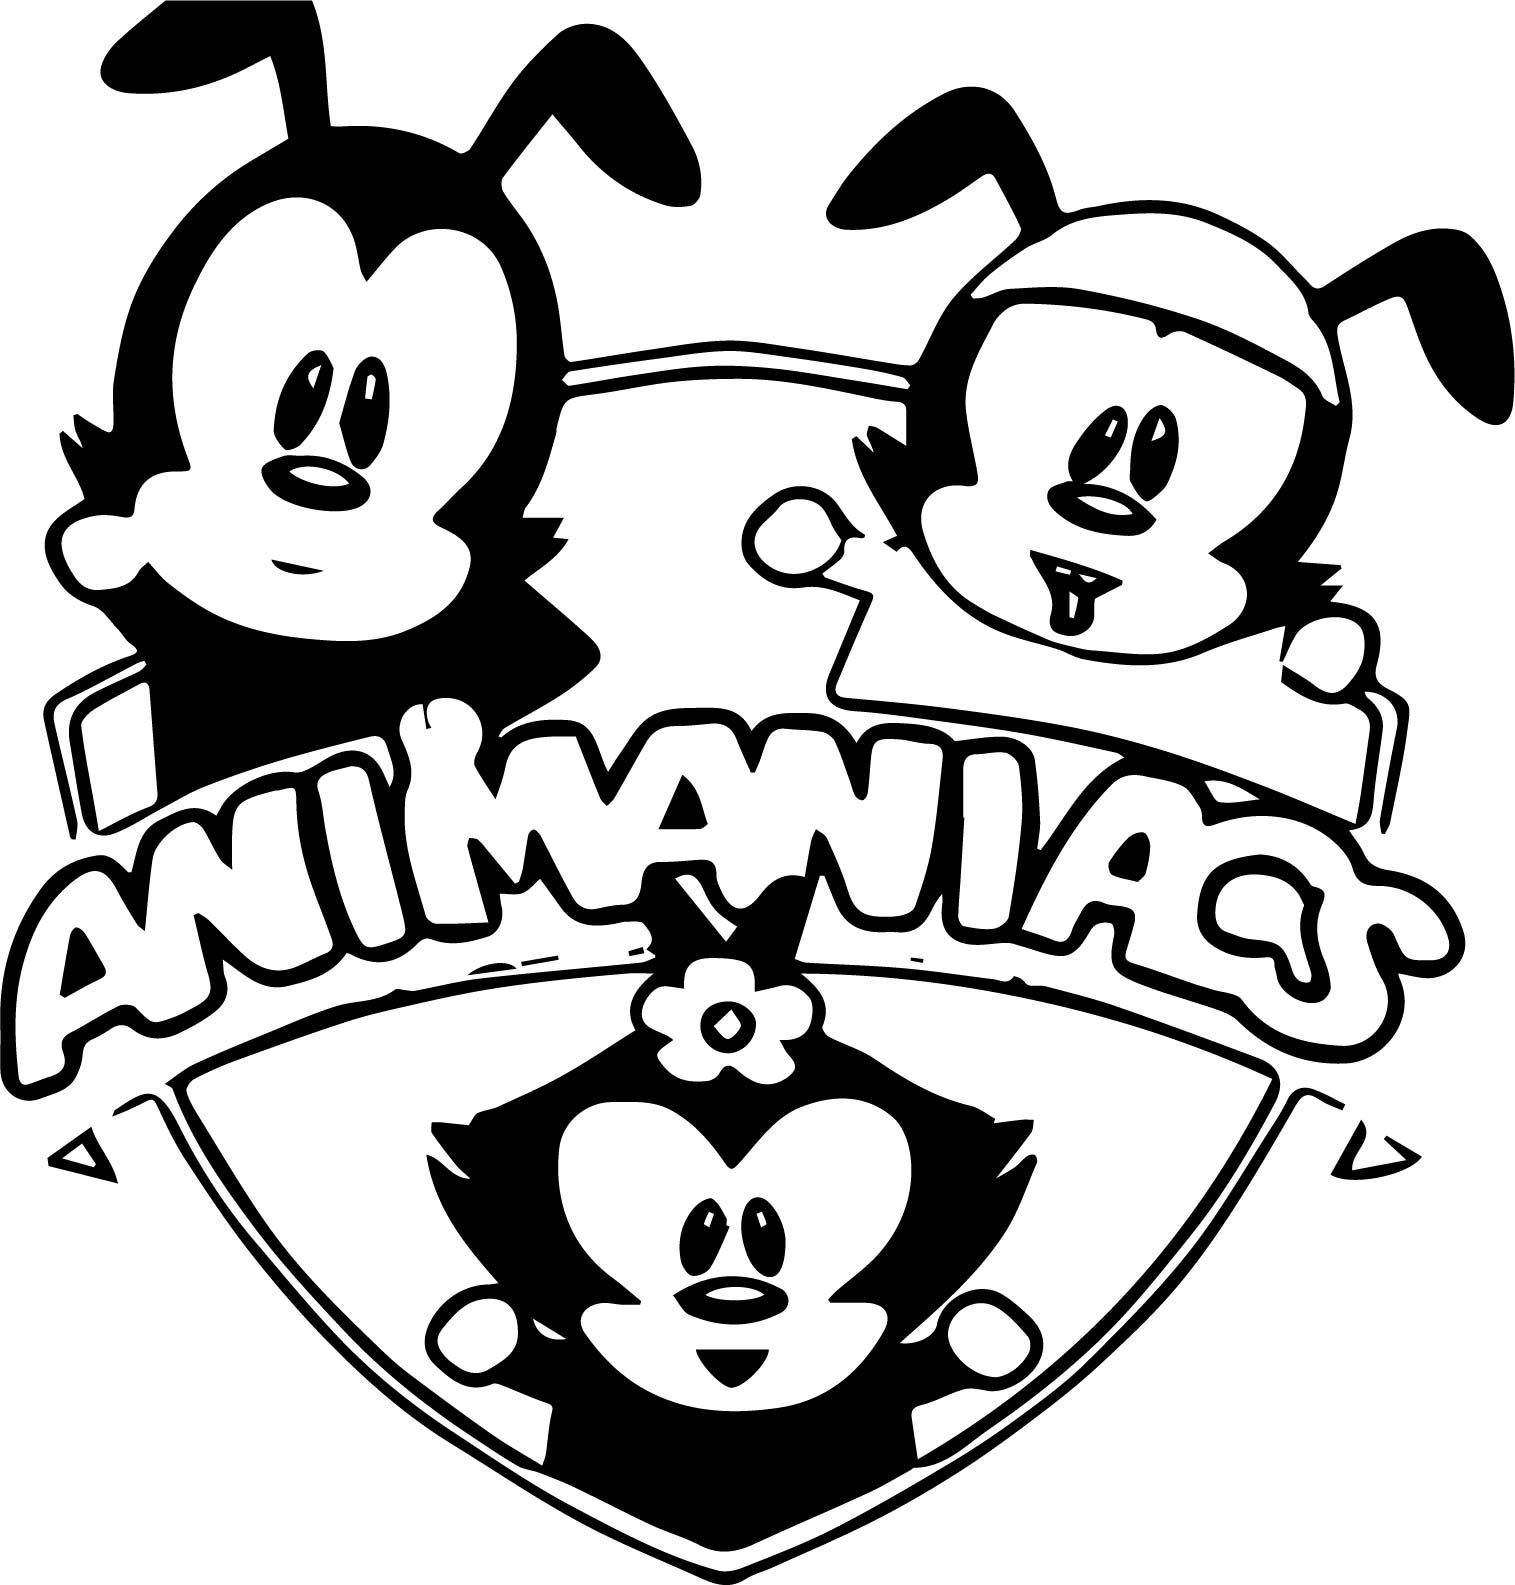 South Animaniacs Coloring Page | Wecoloringpage.com